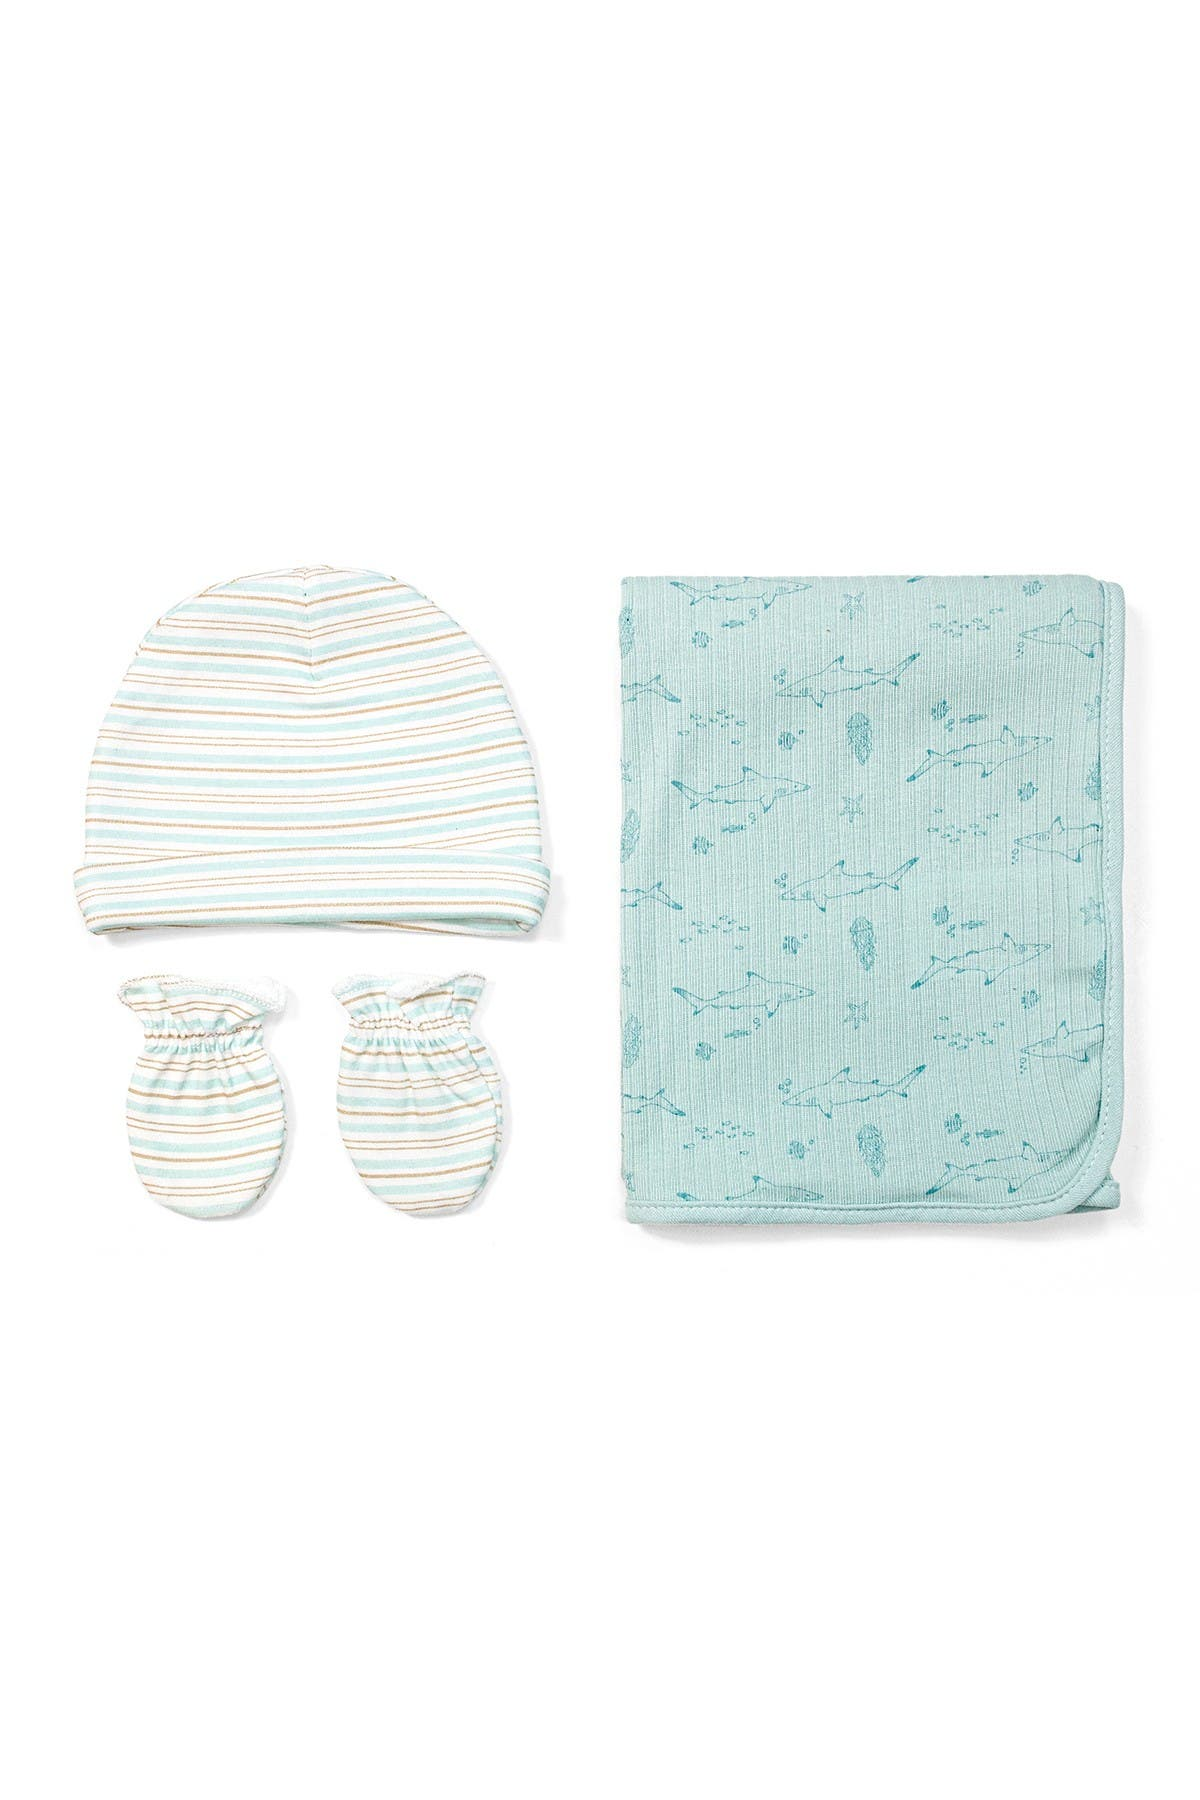 Image of RABBIT AND BEAR ORGANIC Printed Baby Blanket, Mitten, & Cap 3-Piece Set